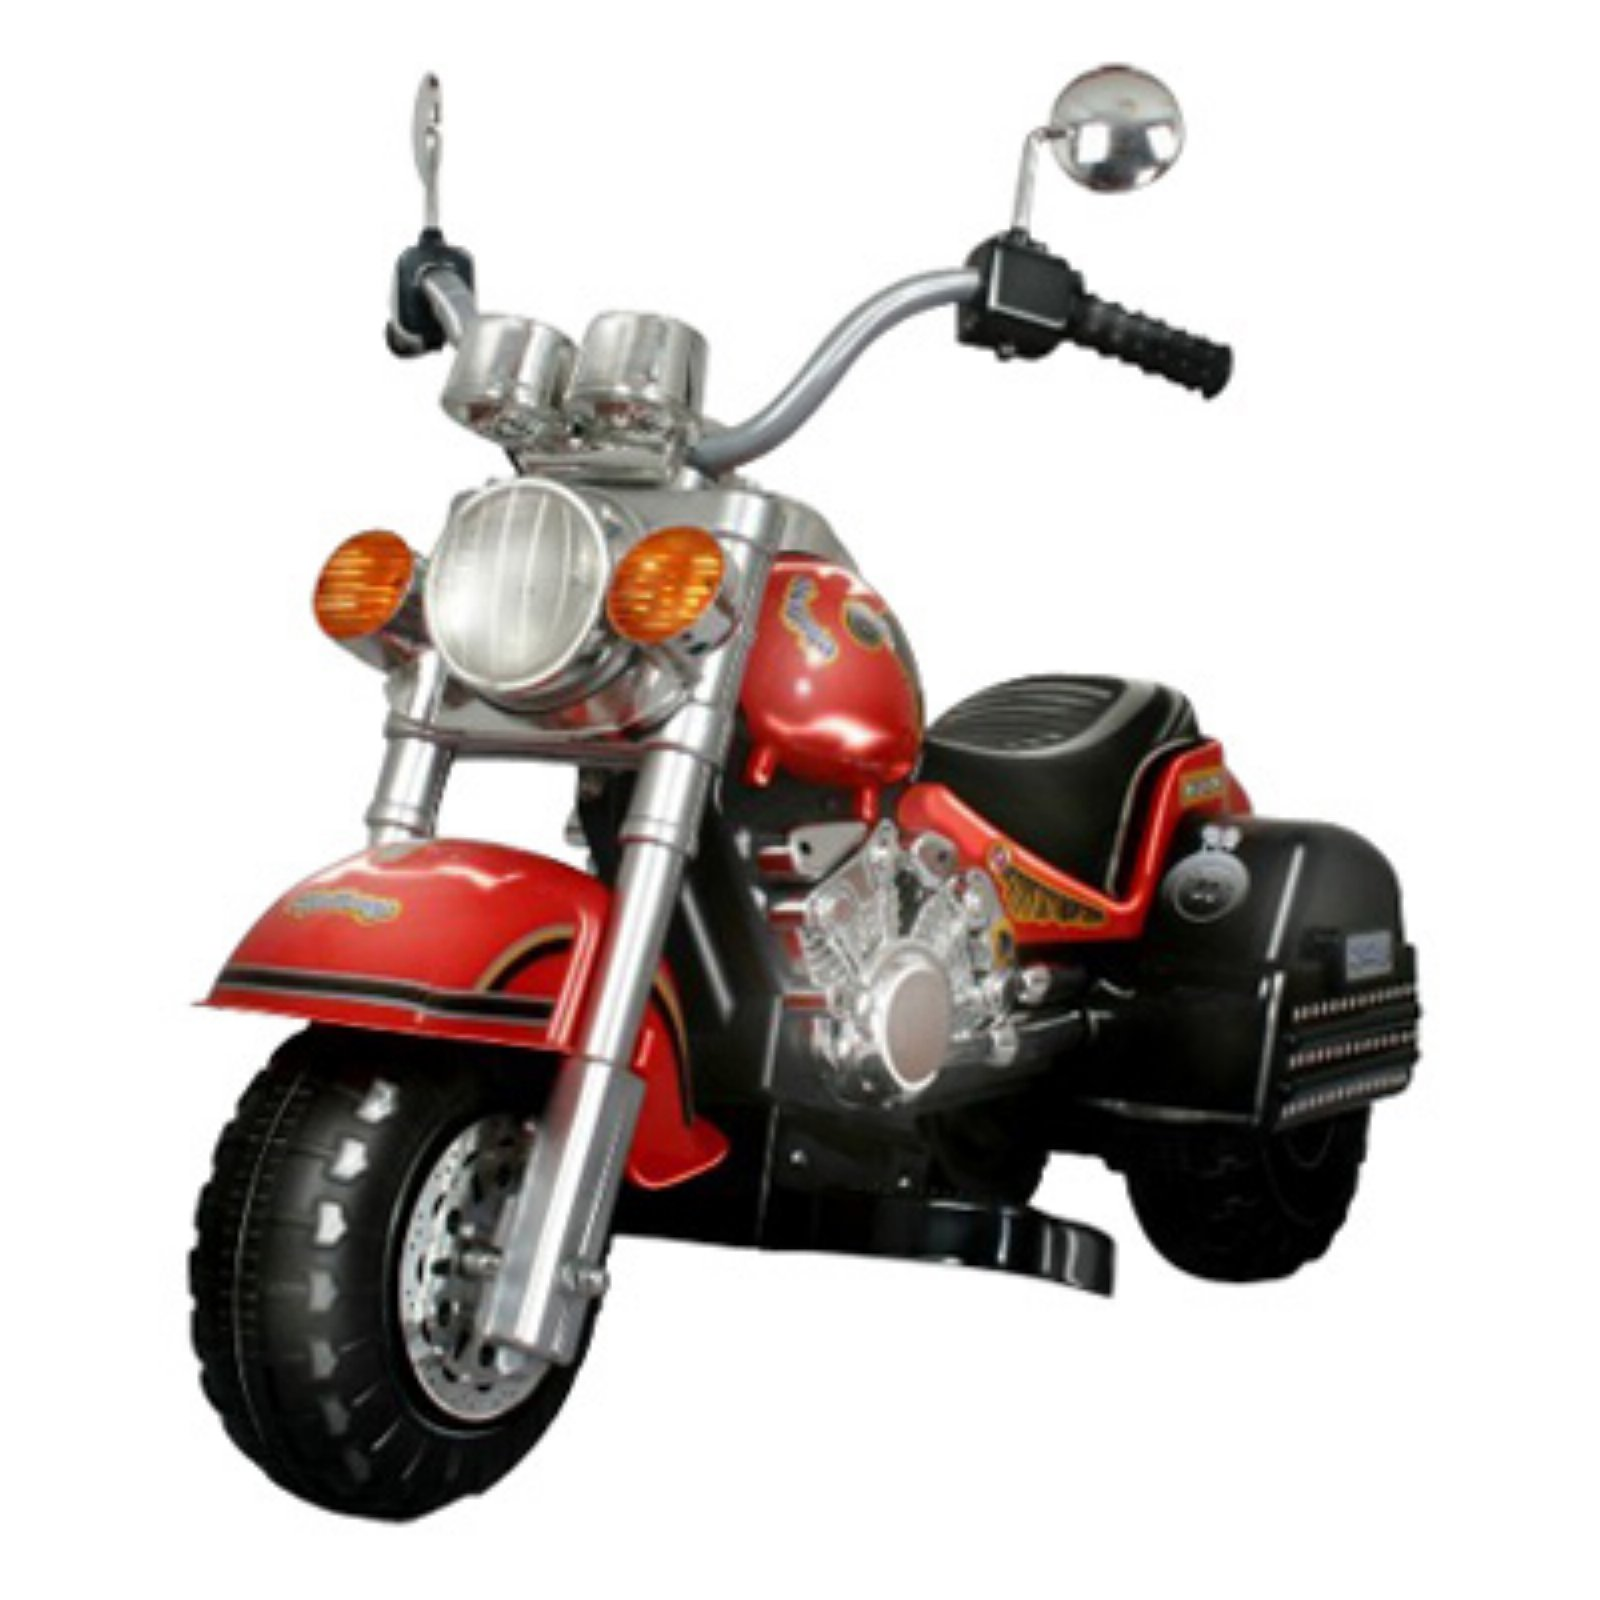 Merske Harley Chopper Style Motorcycle Battery Powered Riding Toy Red by Merske